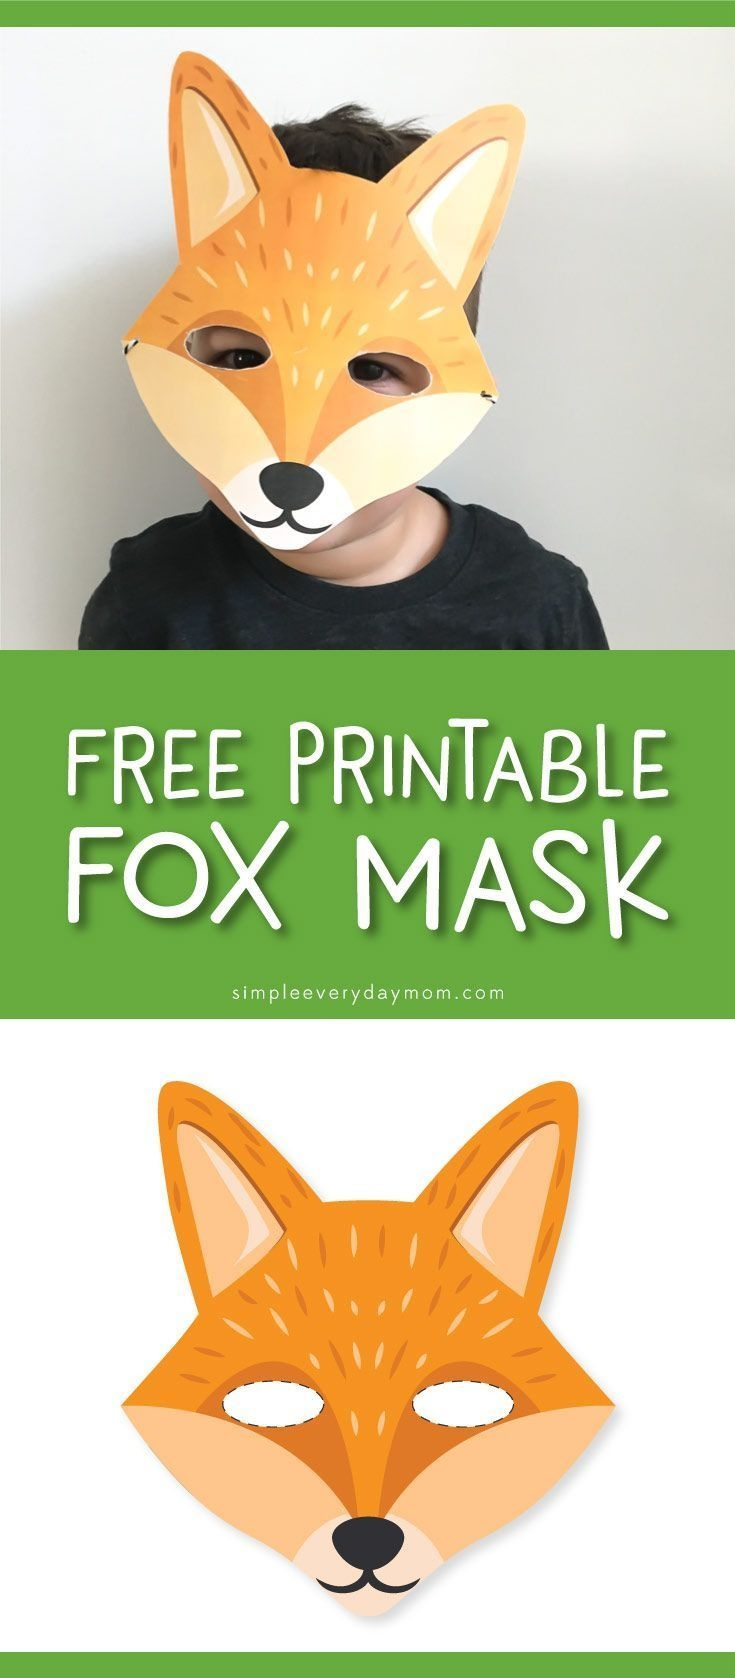 9 Camping Printables For Kids That'll Give You Some Quiet Time - Free Printable Fox Mask Template